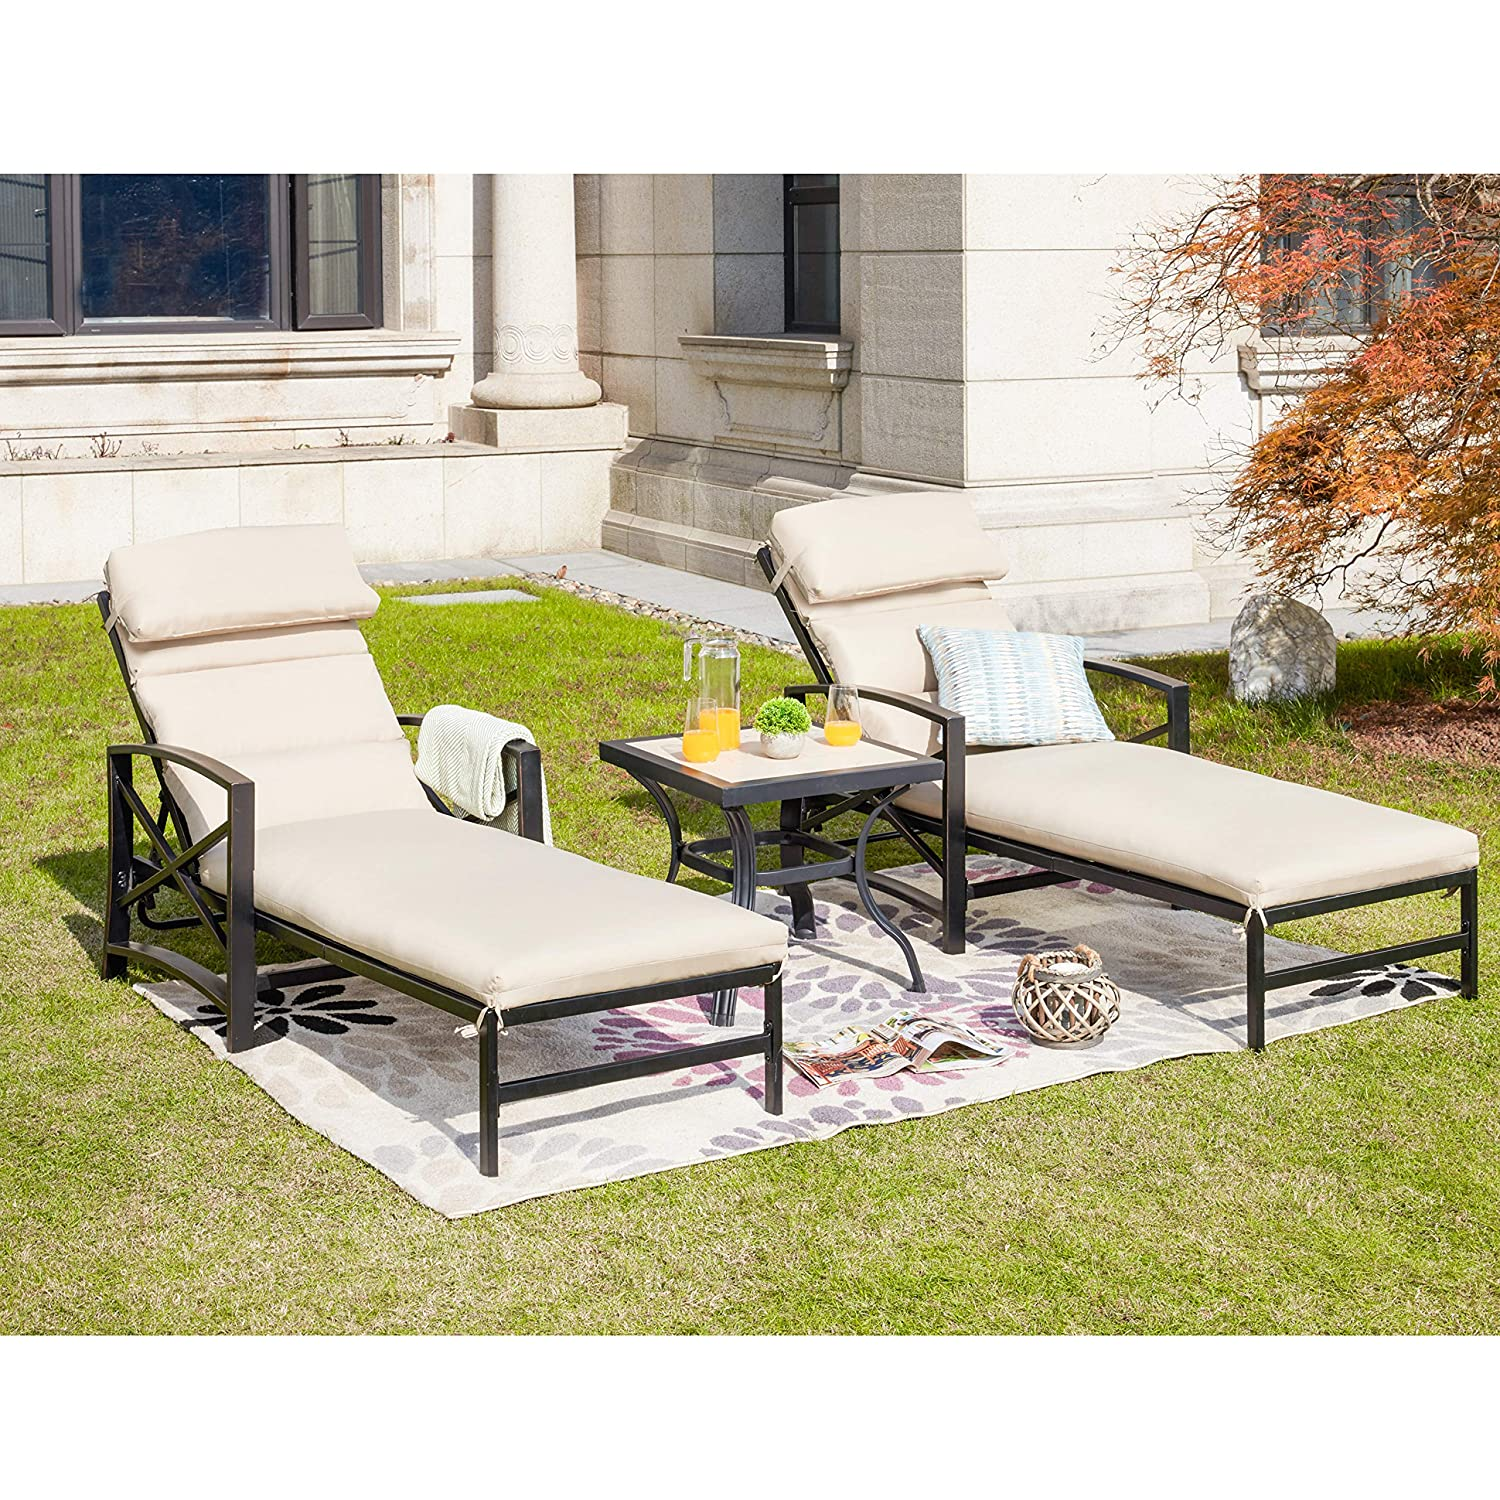 LOKATSE HOME Patio Chaise Lounge Chair Set with Table Outdoor Metal Chairs Furniture, Khaki